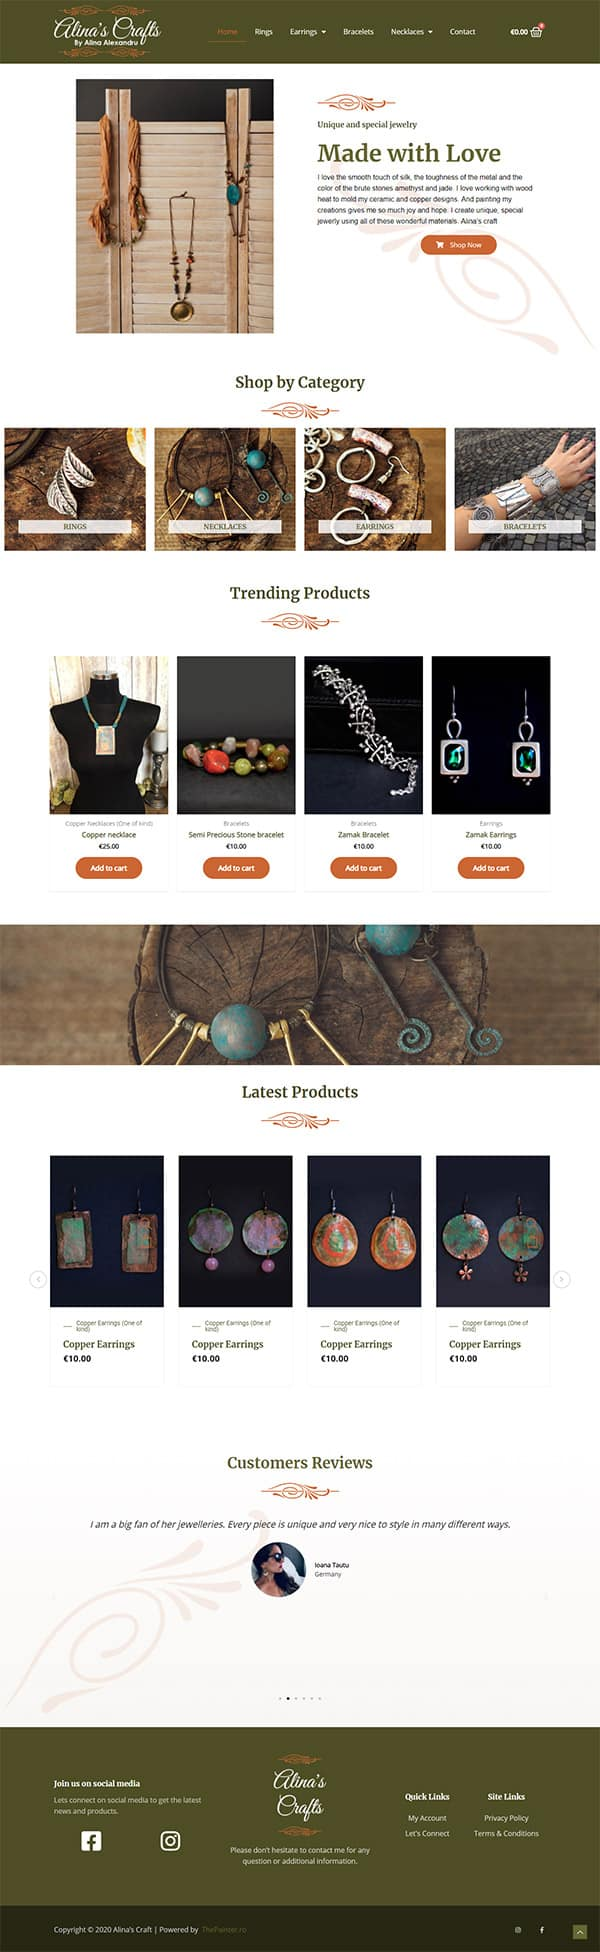 Alina's Craft website